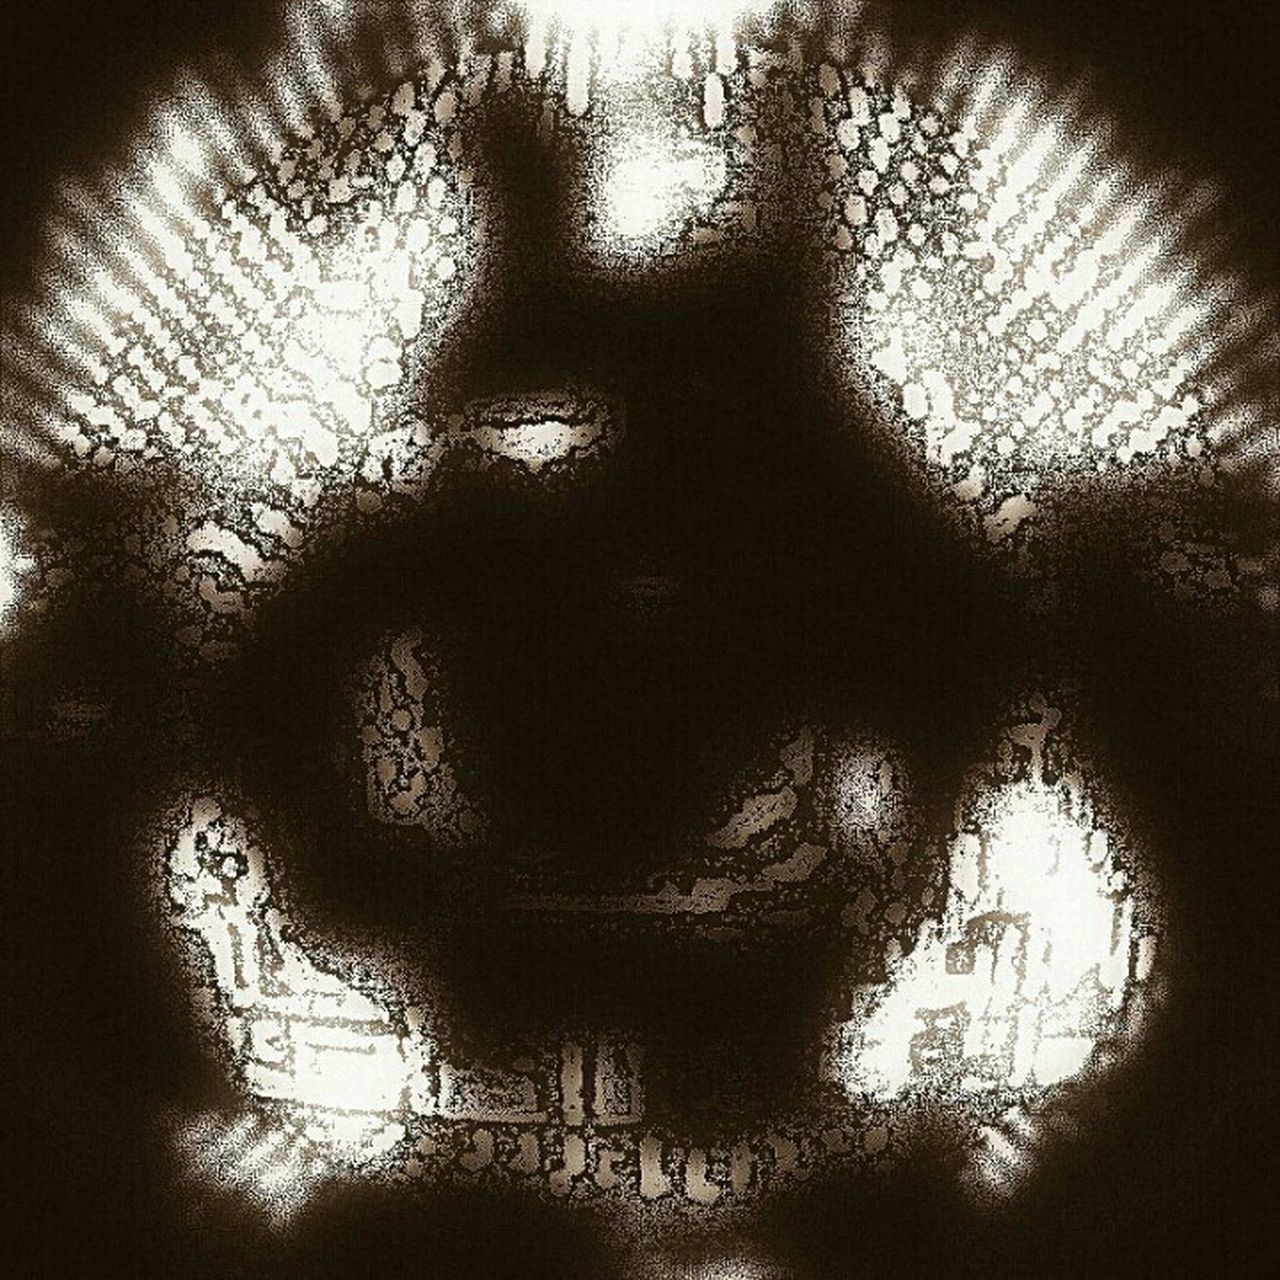 Psychic Medium Surrealism Esoteric Darkart Trippy! Occult Light And Shadow Illusion Art Photography EyeEm Best Shots The Impurist Surrealist Art Trippin' Creative Light And Shadow Abstract Art All Seeing Eye Check This Out Psychedelic Dream Trippy